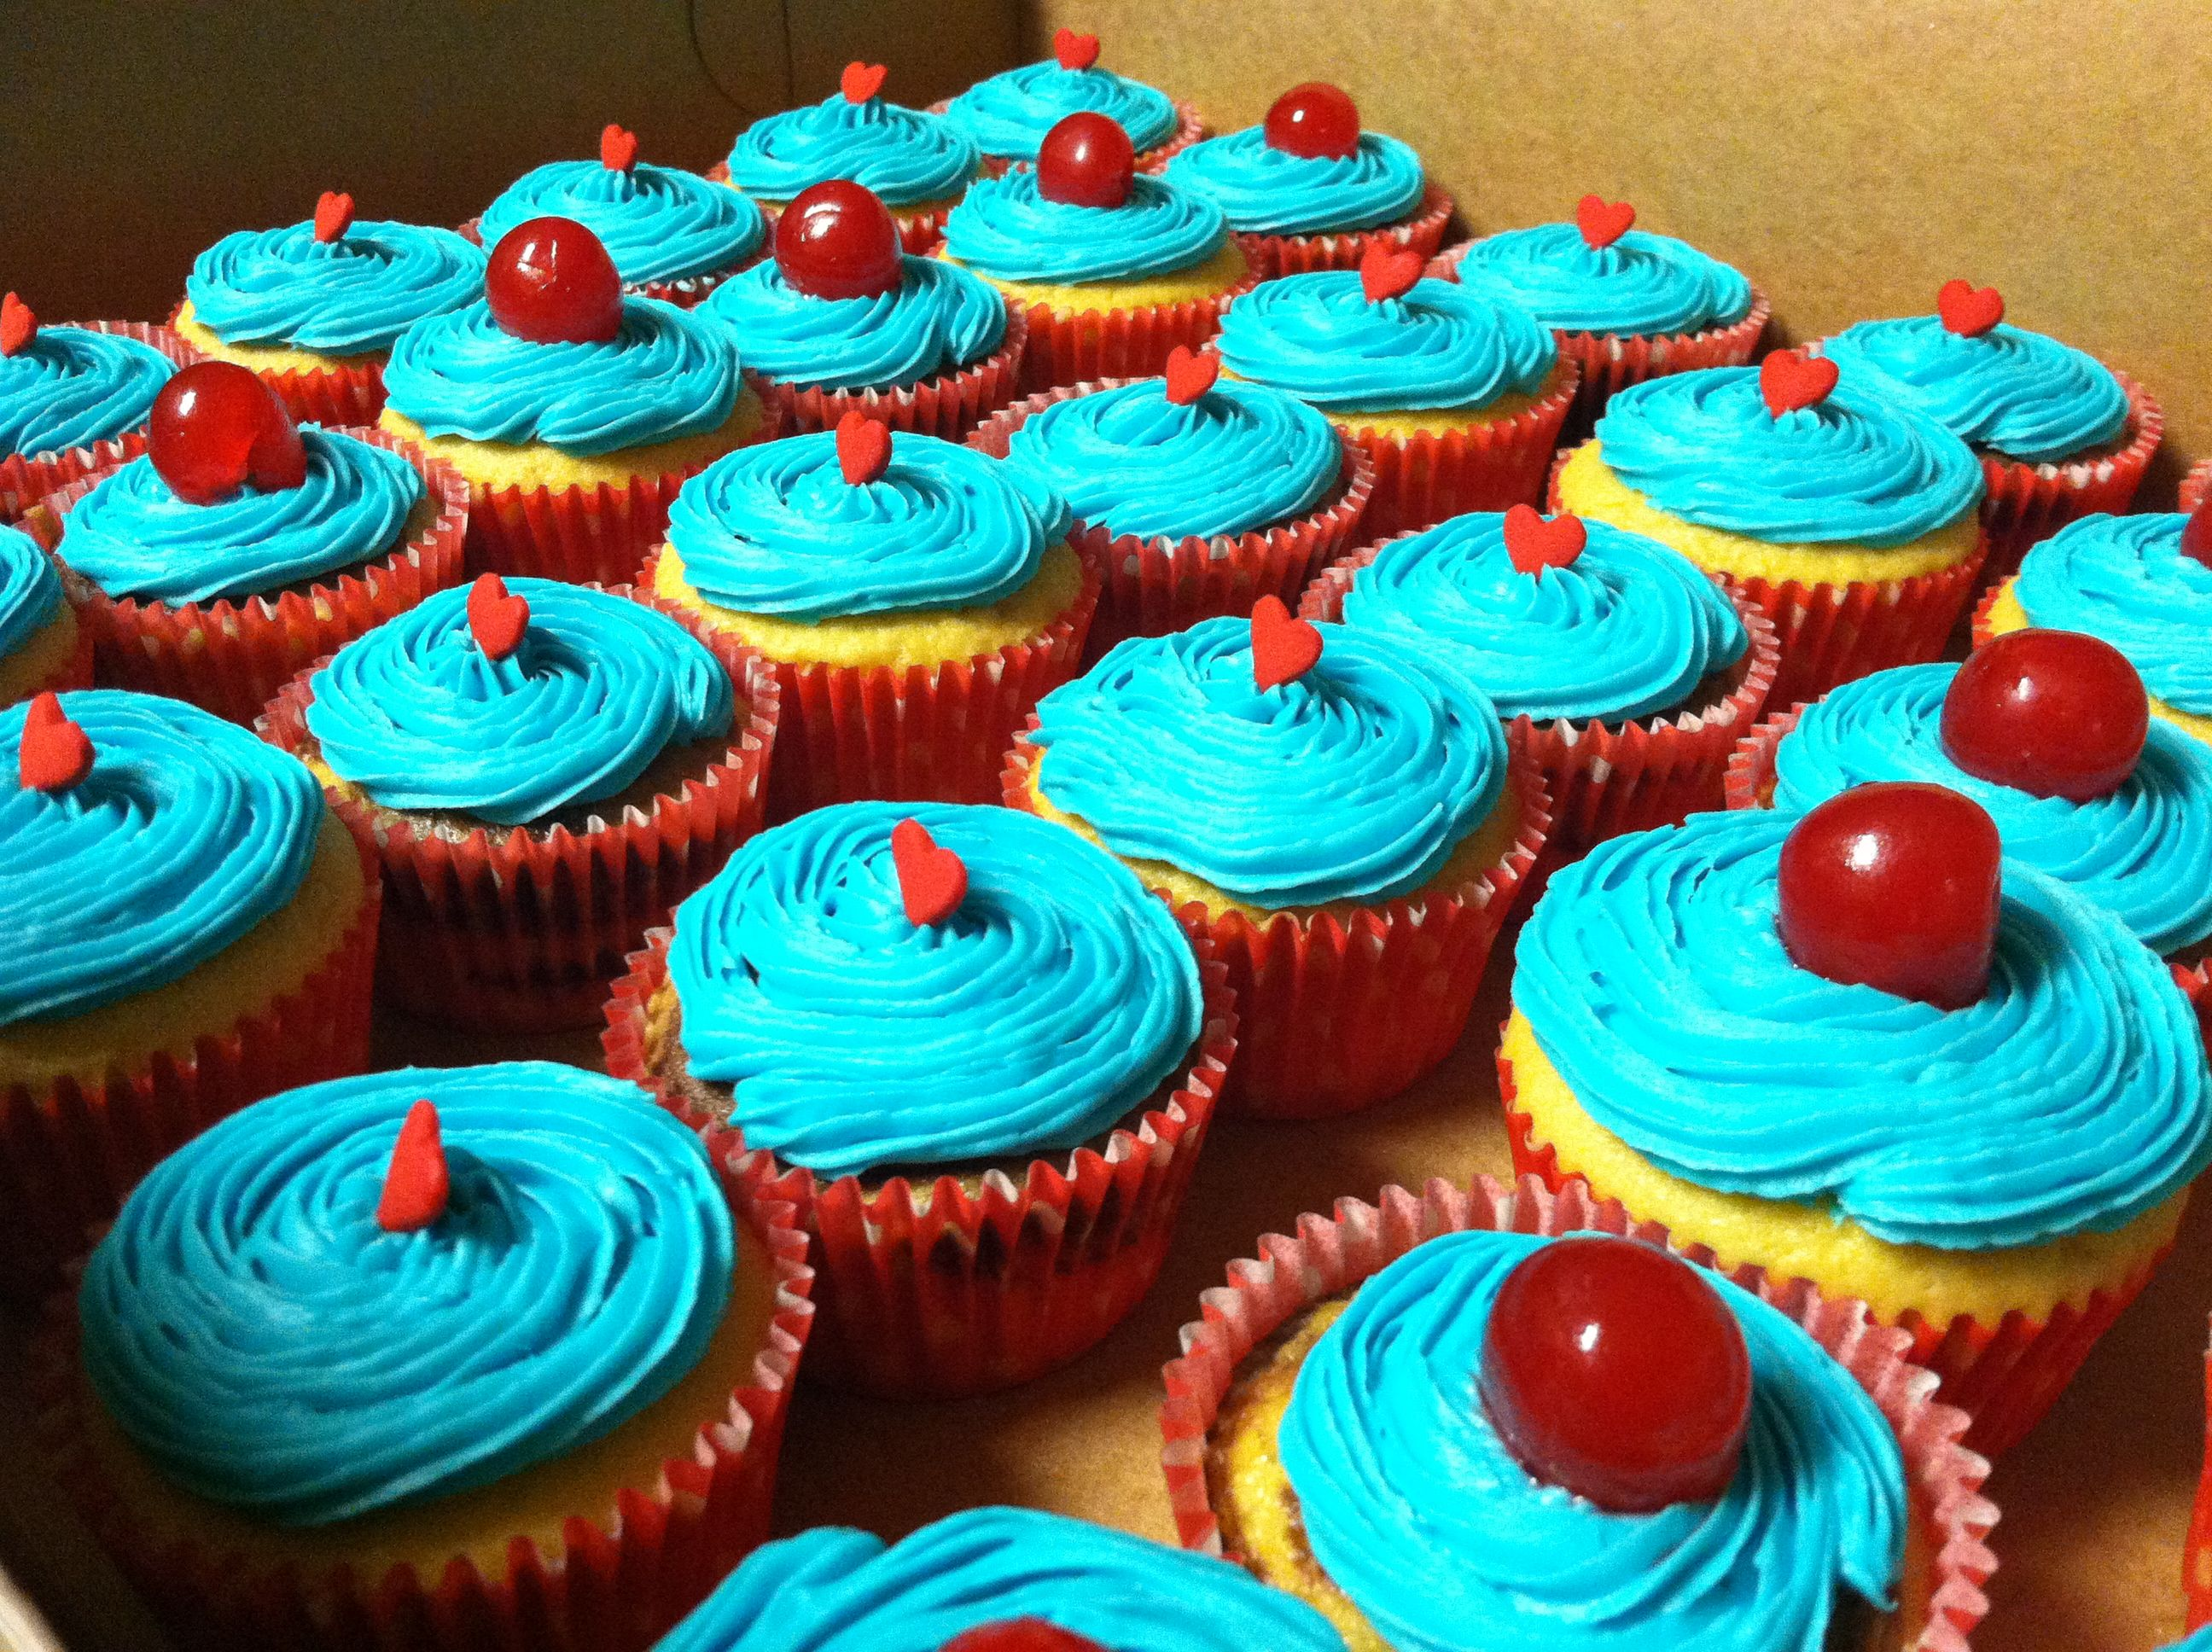 Chic Cupcakes: Hearts and Cherries